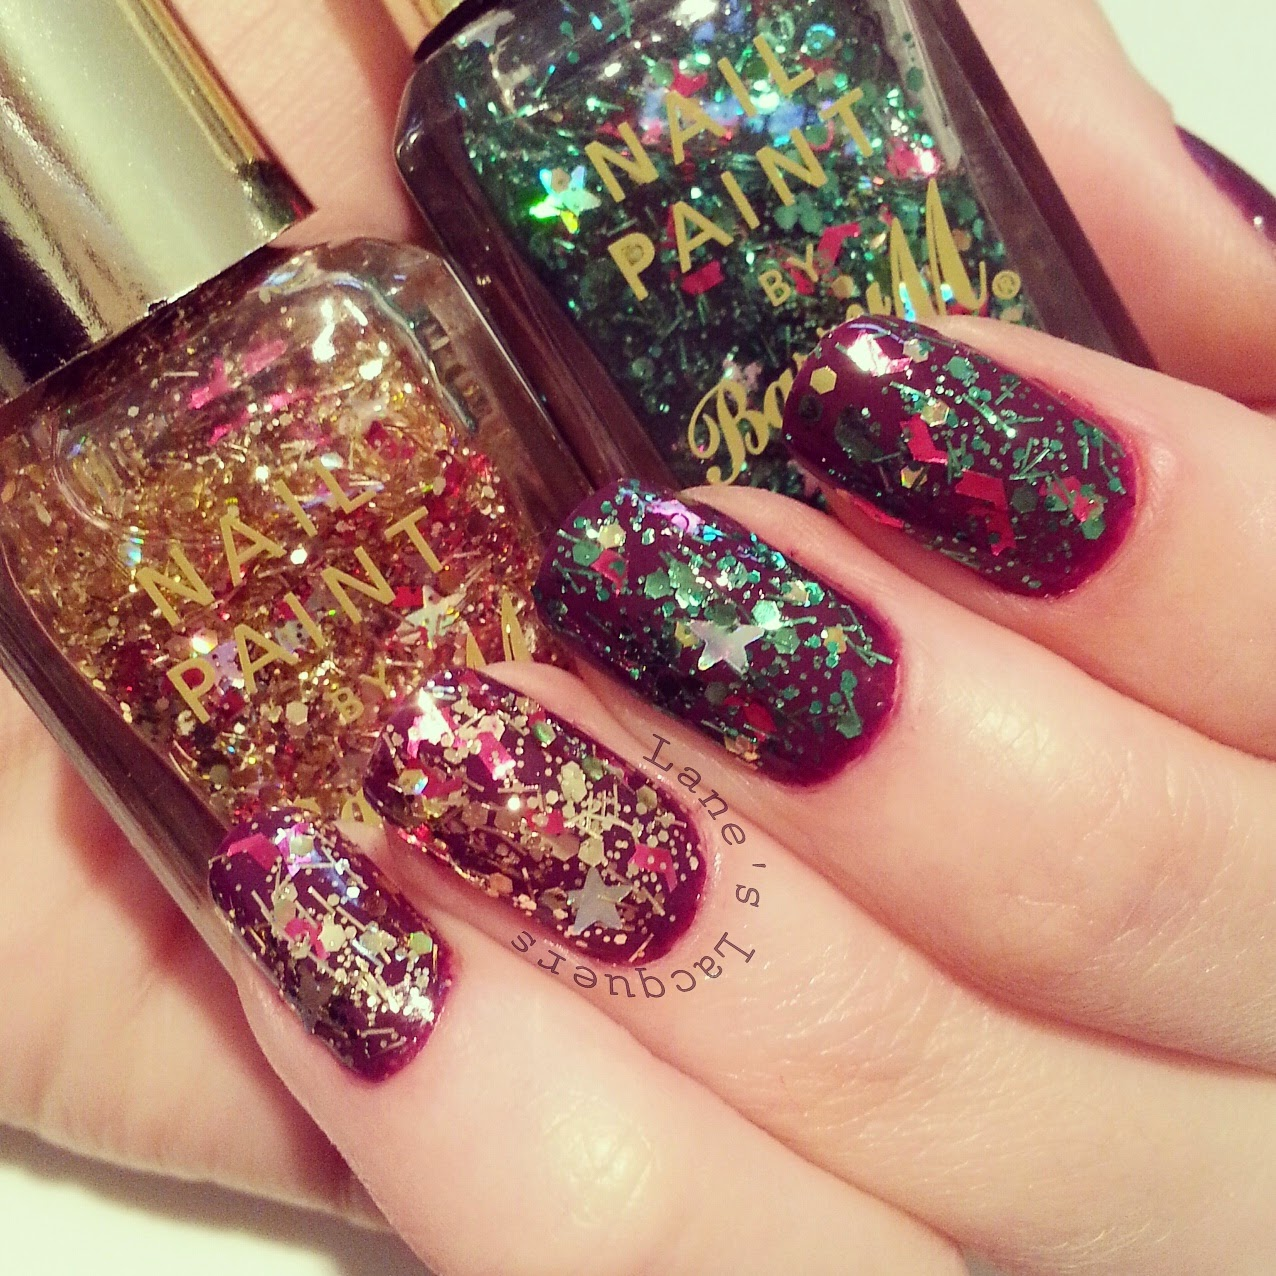 barry-m-christmas-tree-jingle-bells-berry-cosmo-swatch-nails (2)